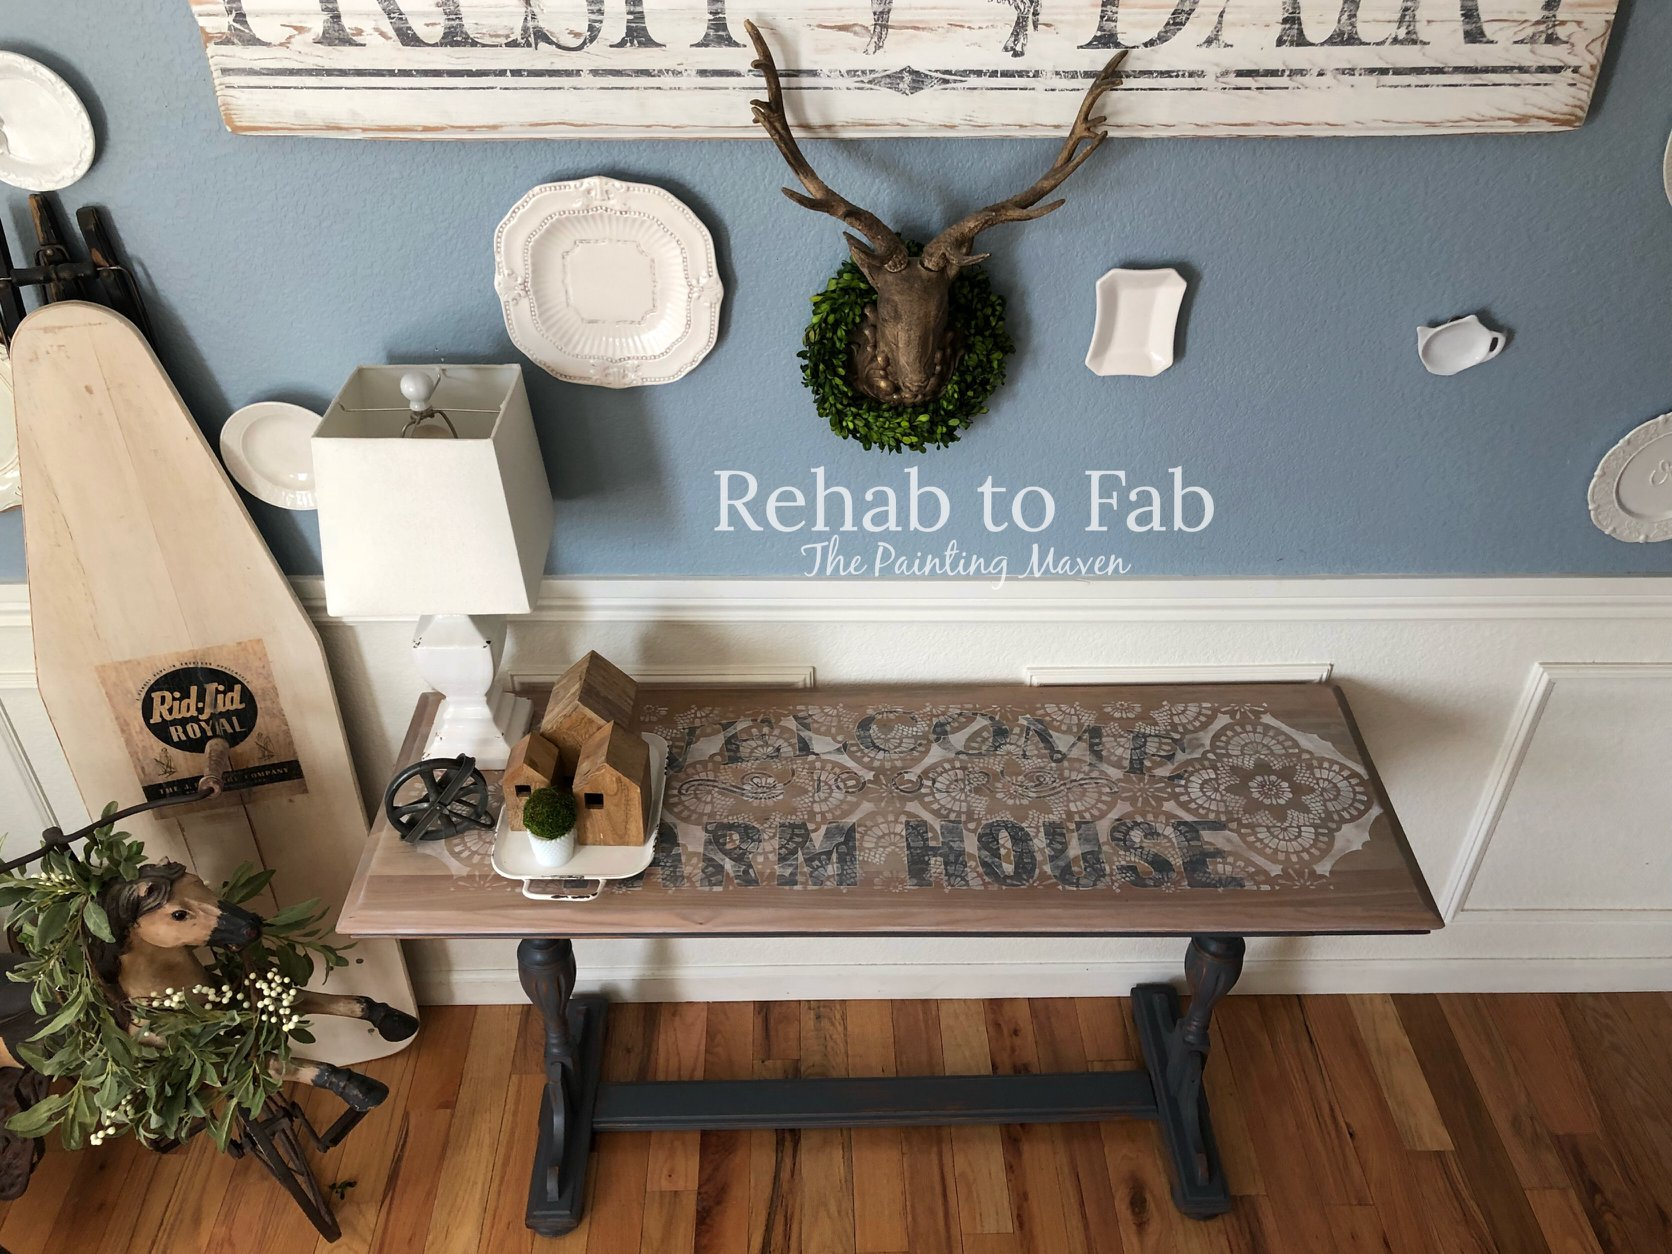 We just LOVE this table that Stephanie Coon from Rehab to Fab refurbished using our [re]design transfer, soon to be released stencil and Kristi Kuehl paints....What an amazing piece to put in a hall to welcome guests as they enter your home! Here is what the Painting Maven did...